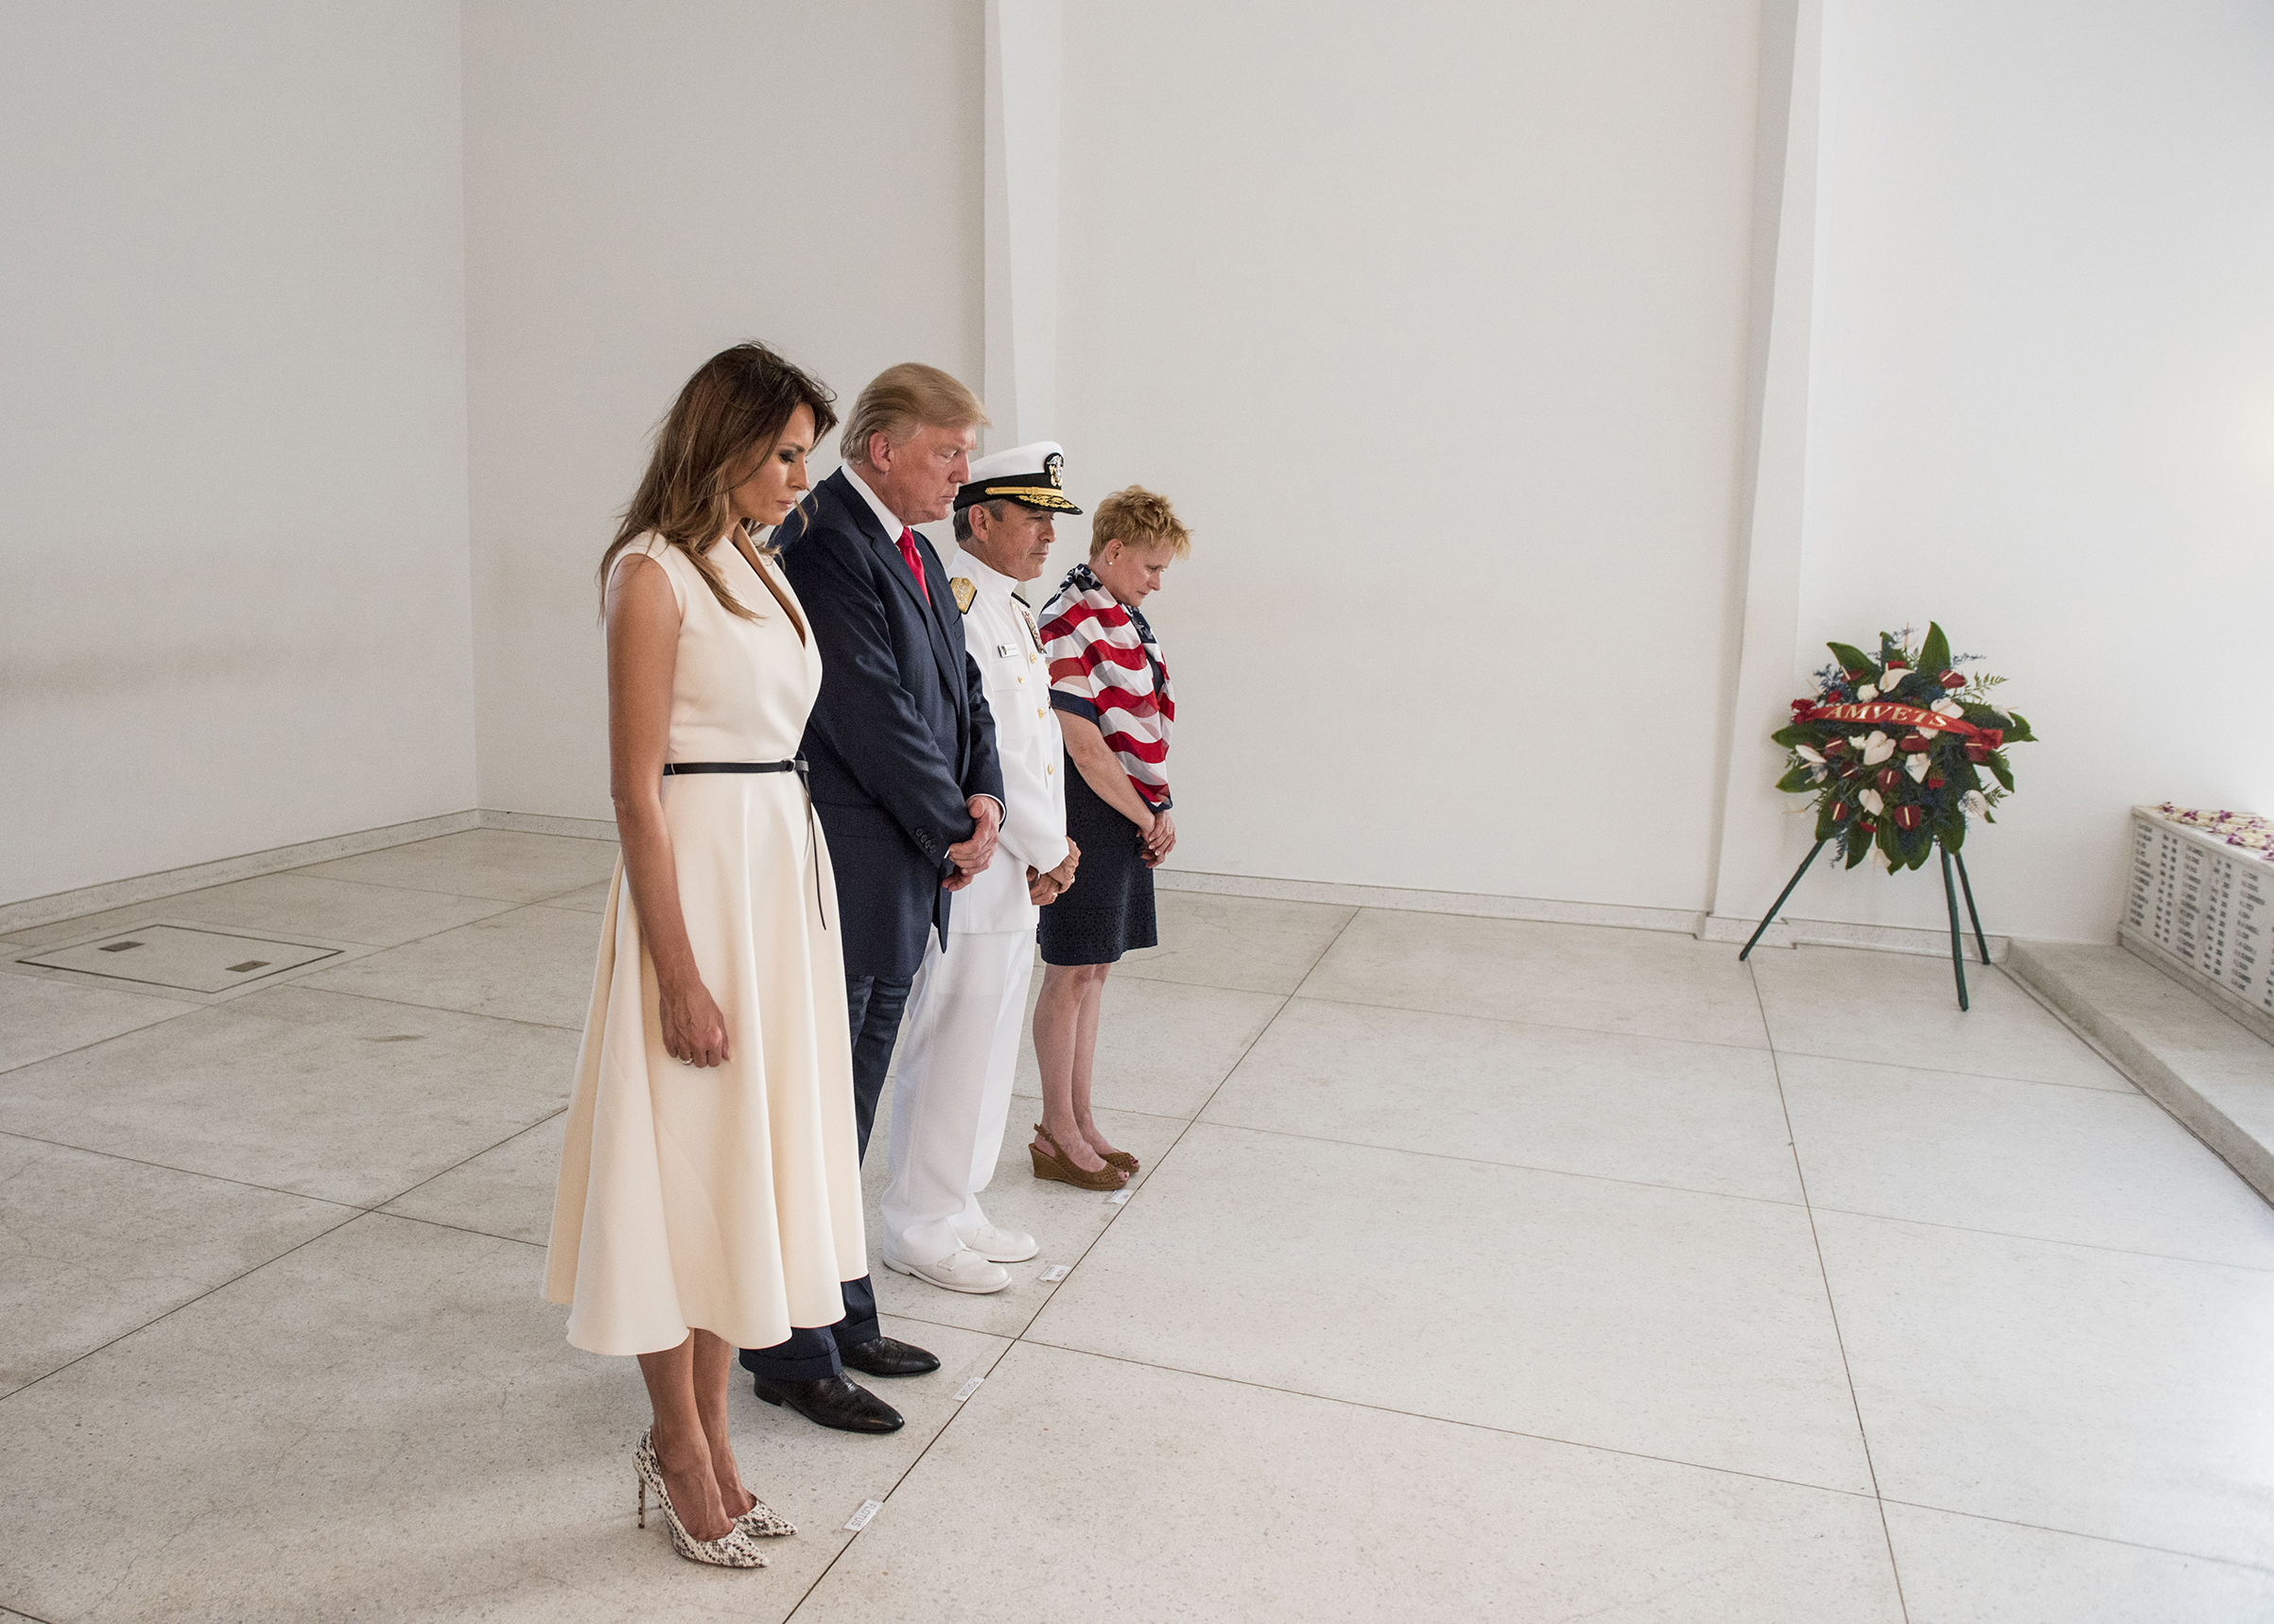 First Lady Melania Trump, wearing a Christian Dior dress and Manolo Blahnik shoes, joins her husband, US Pacific Command Commander, Adm. Harry Harris, and his wife Ms. Bruni Bradley, to honor fallen service members at the USS Arizona Memorial at Pearl Harbor, Hawaii, on Nov. 3, 2017.